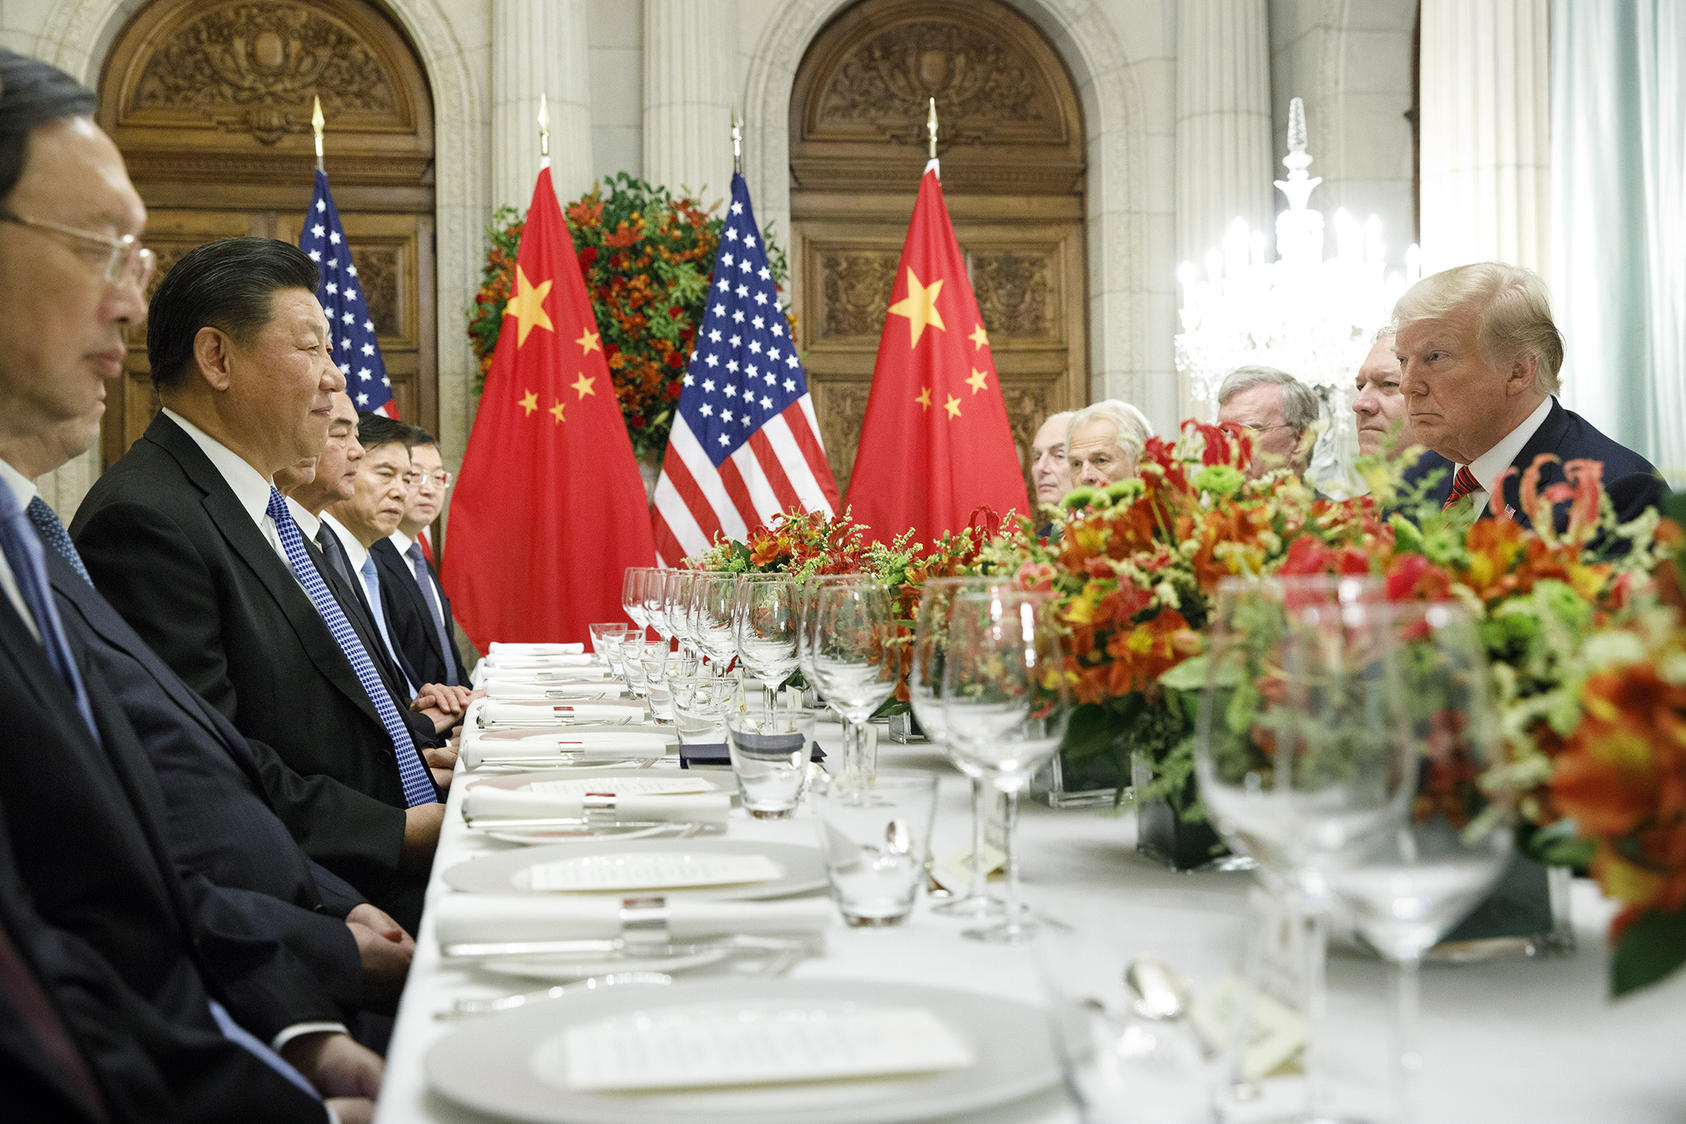 President Donald Trump participates in a bilateral dinner meeting with President Xi Jinping of China, during the G-20 Summit in Buenos Aires, Argentina, Dec. 1, 2018. (Tom Brenner/The New York Times)